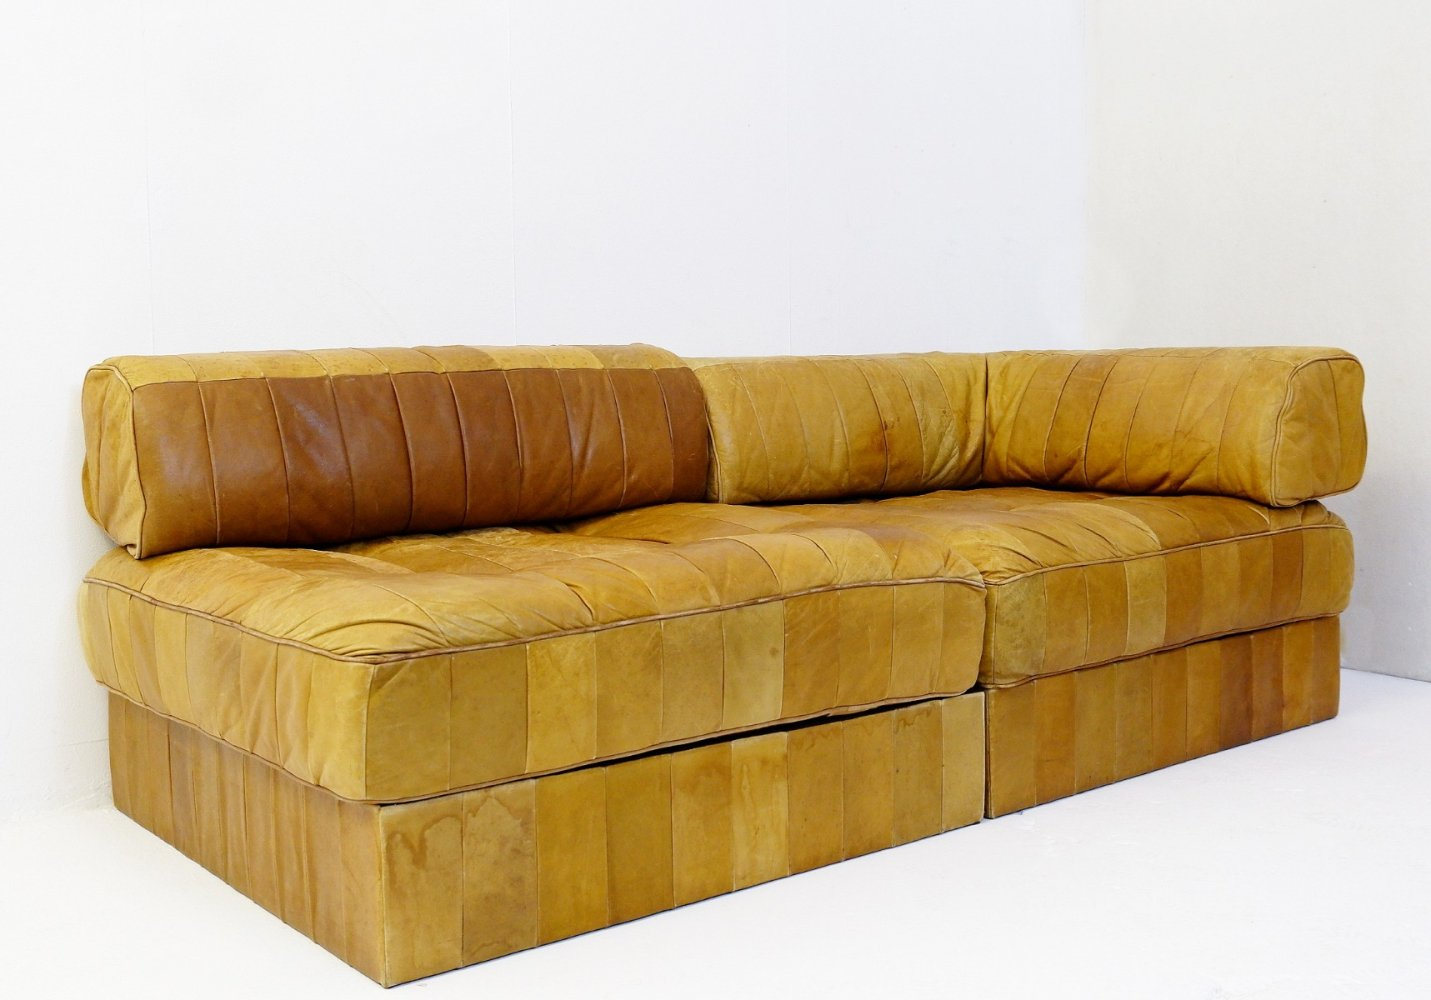 DS88 Patchwork Cognac Leather Modular Sofa From De Sede, 1970